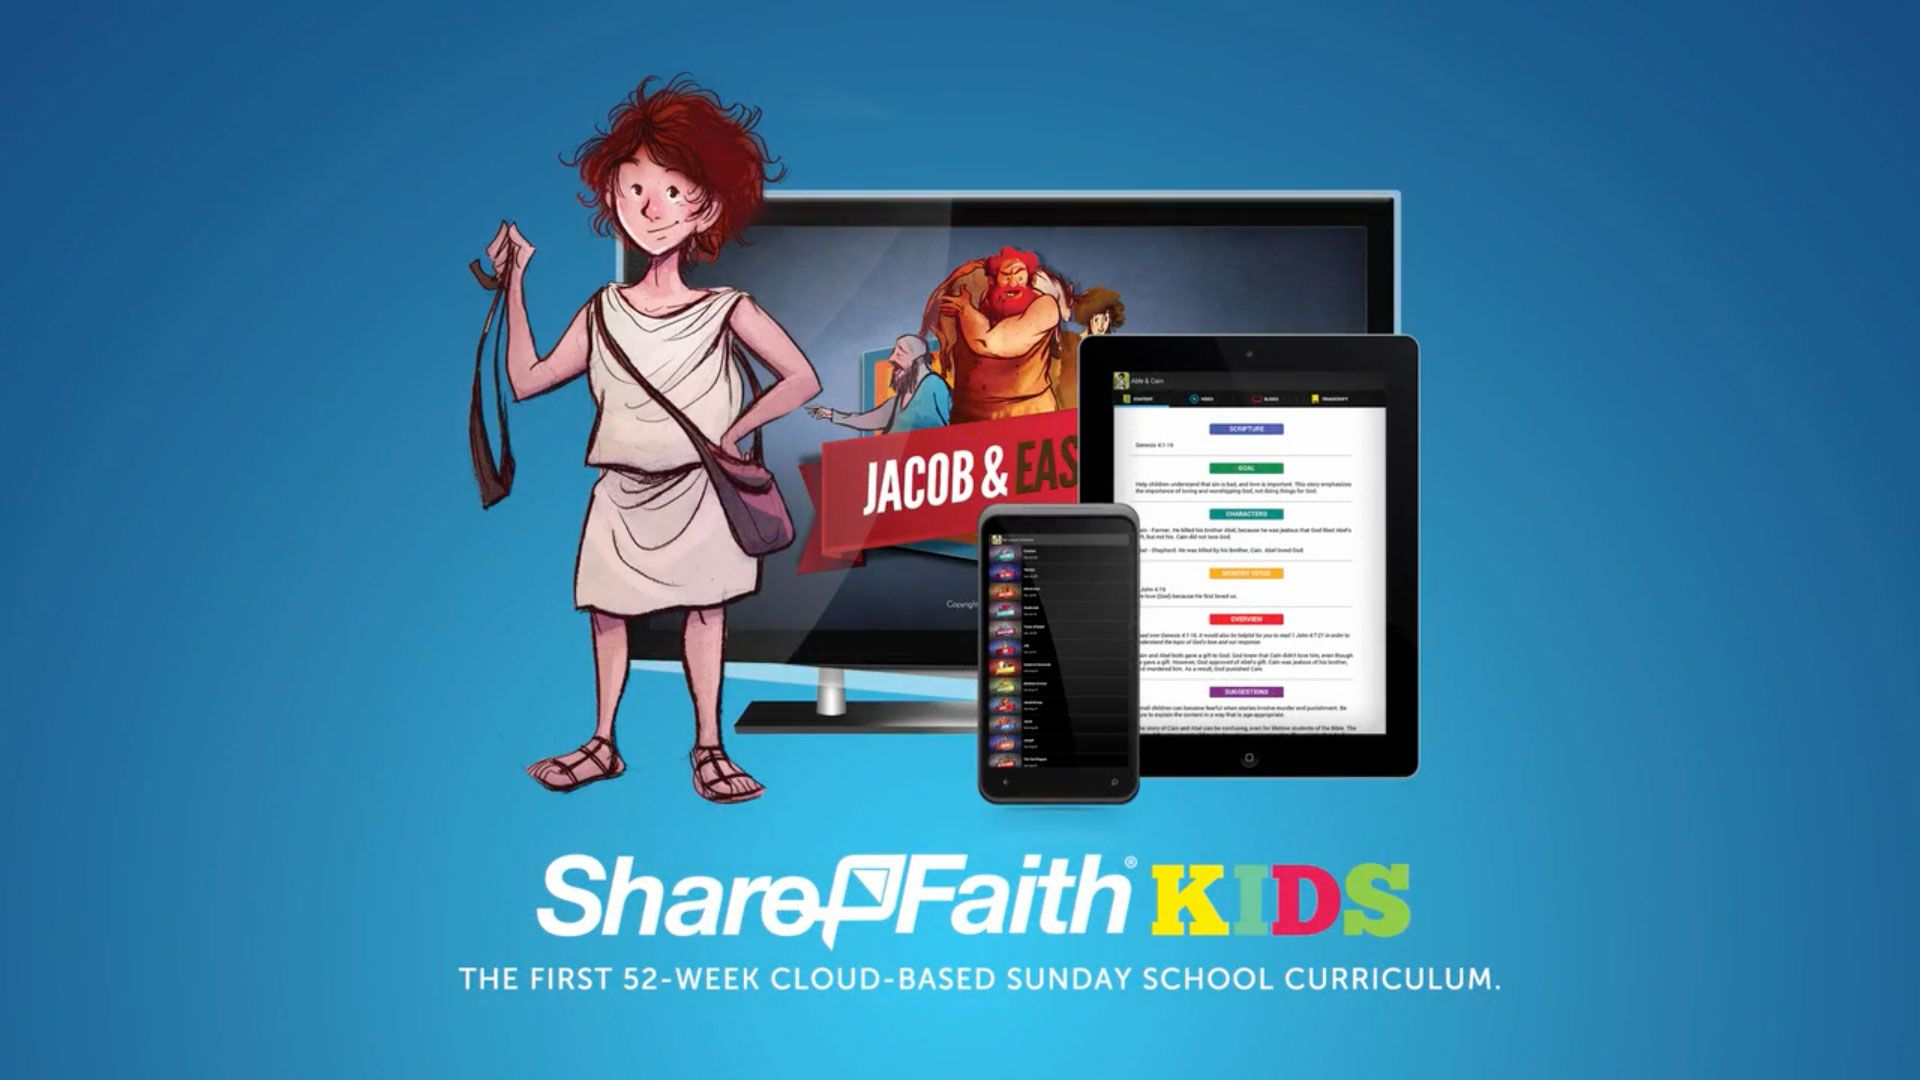 Sunday School Curriculum | SharefaithKids.. prepare and present within the app